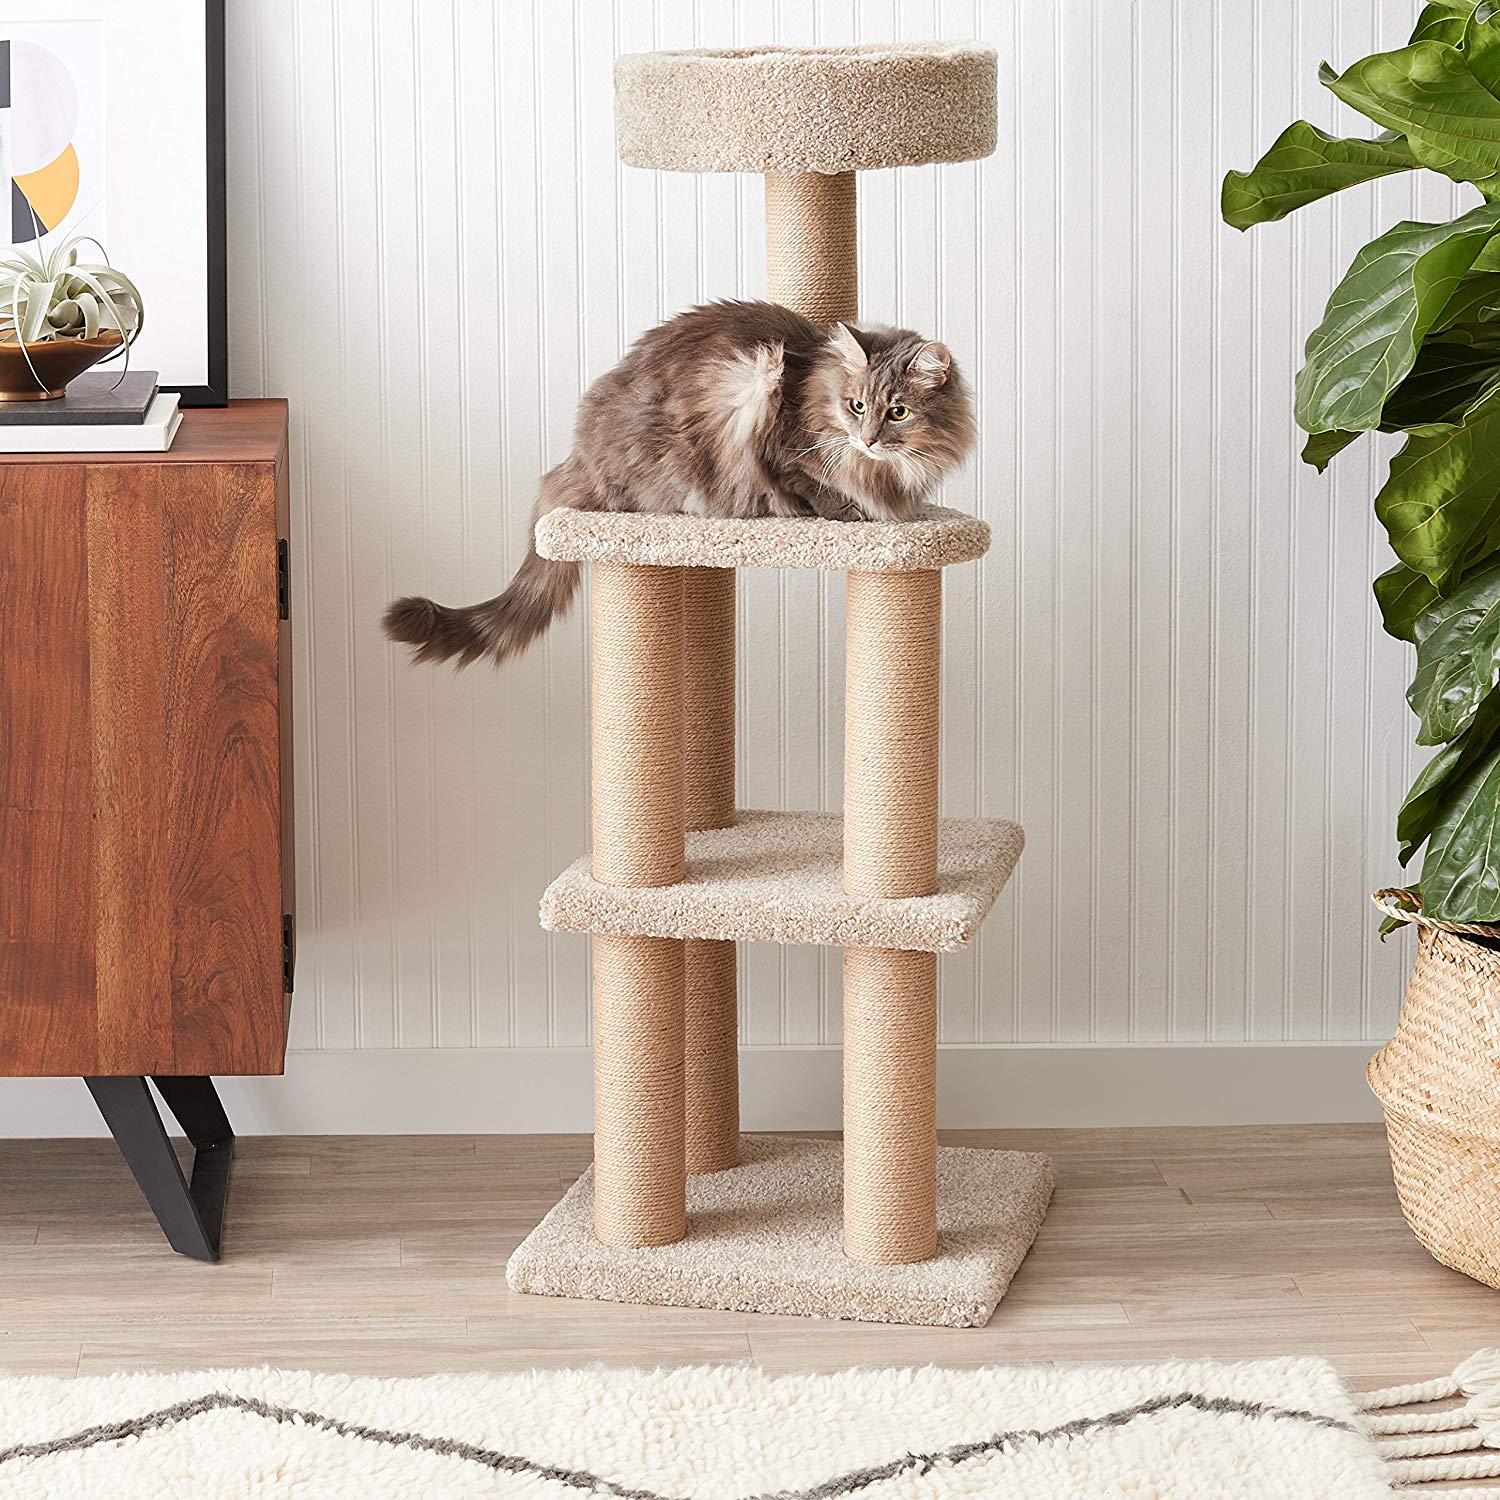 7. AmazonBasics Cat Activity Tree with Scratching Posts